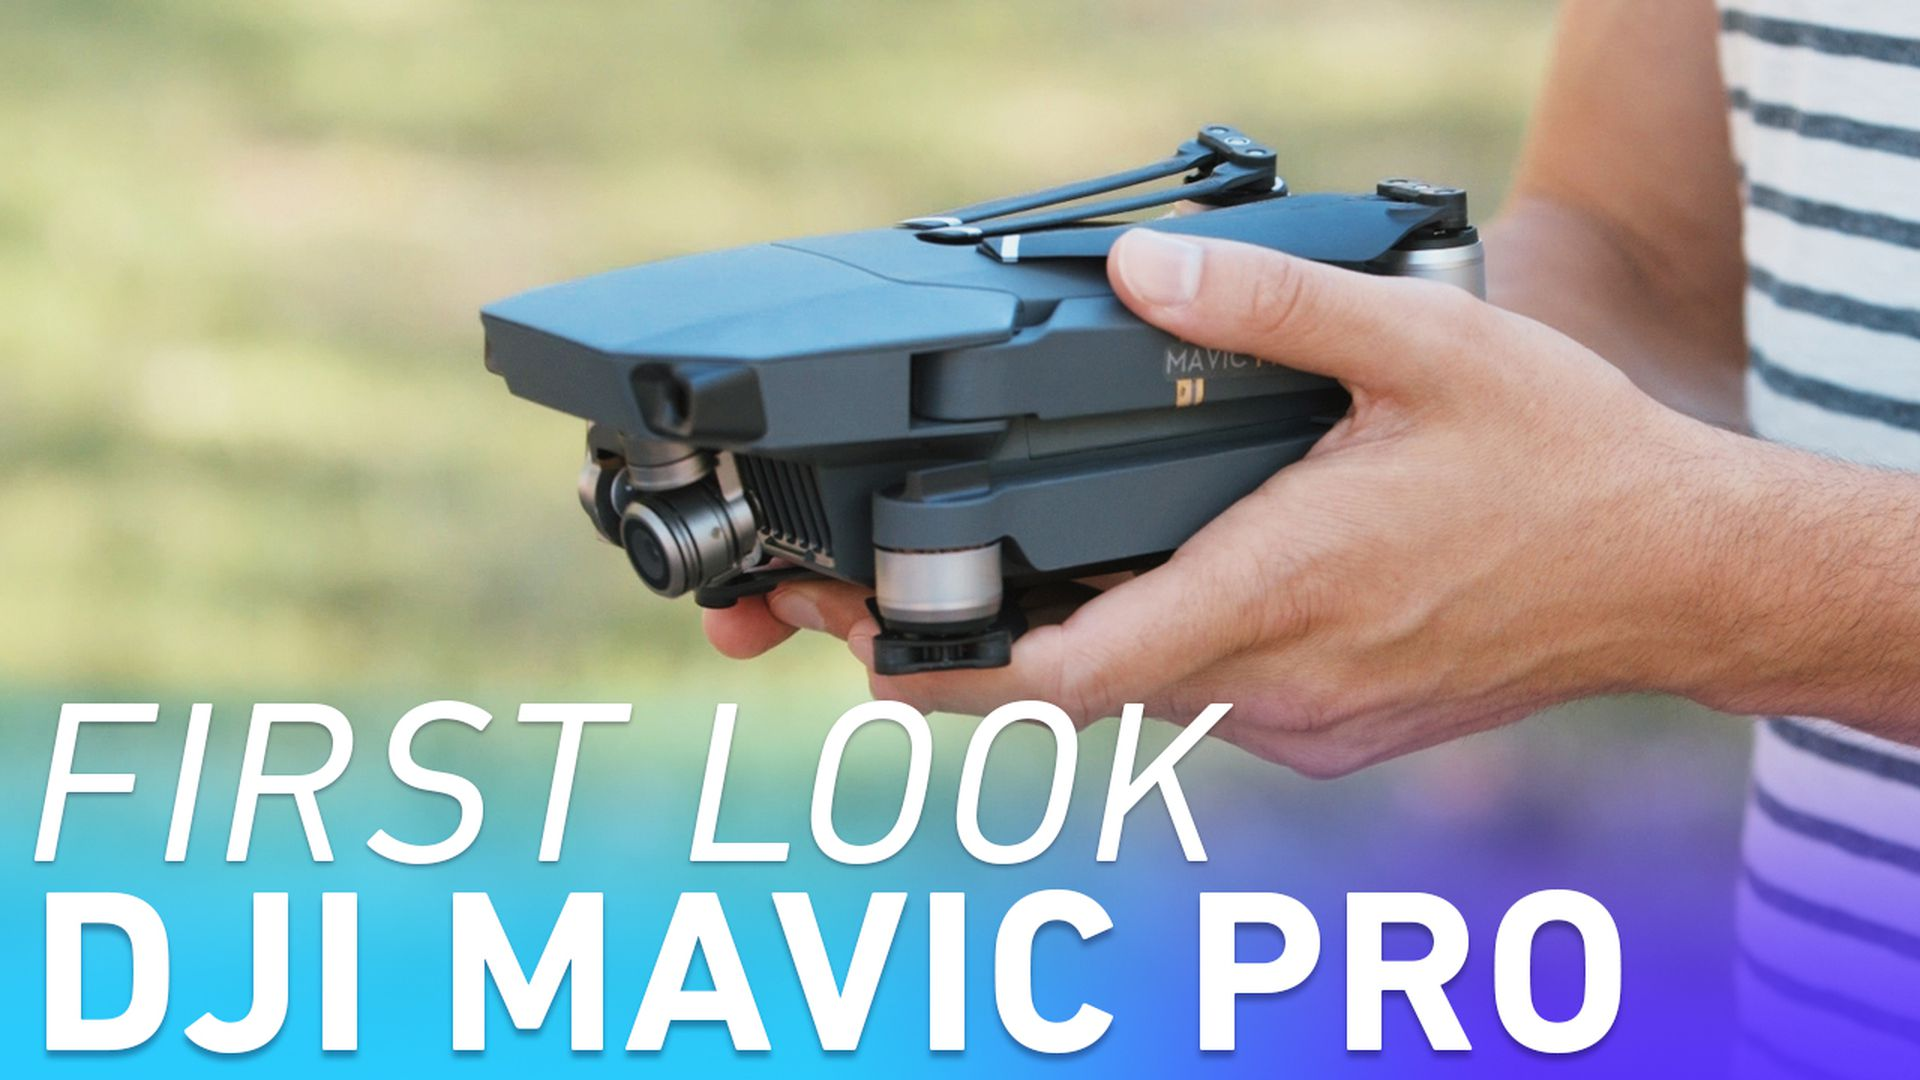 4e35726aaa4 DJI's new Mavic Pro drone folds up and fits in the palm of your hand - The  Verge